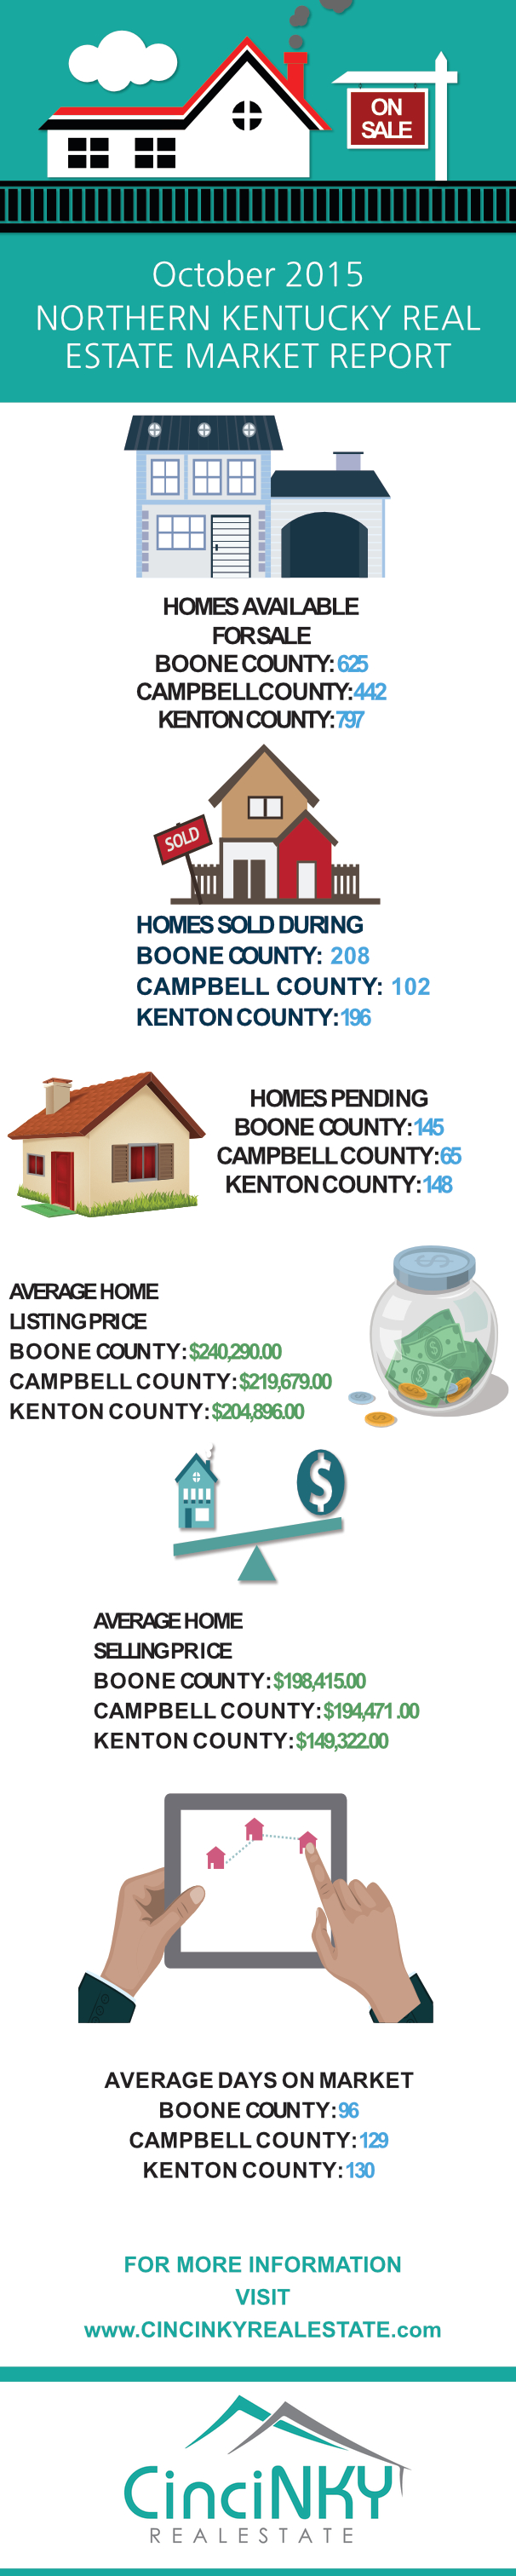 Northern Kentucky Real Estate Sales Report October 2015 infographic